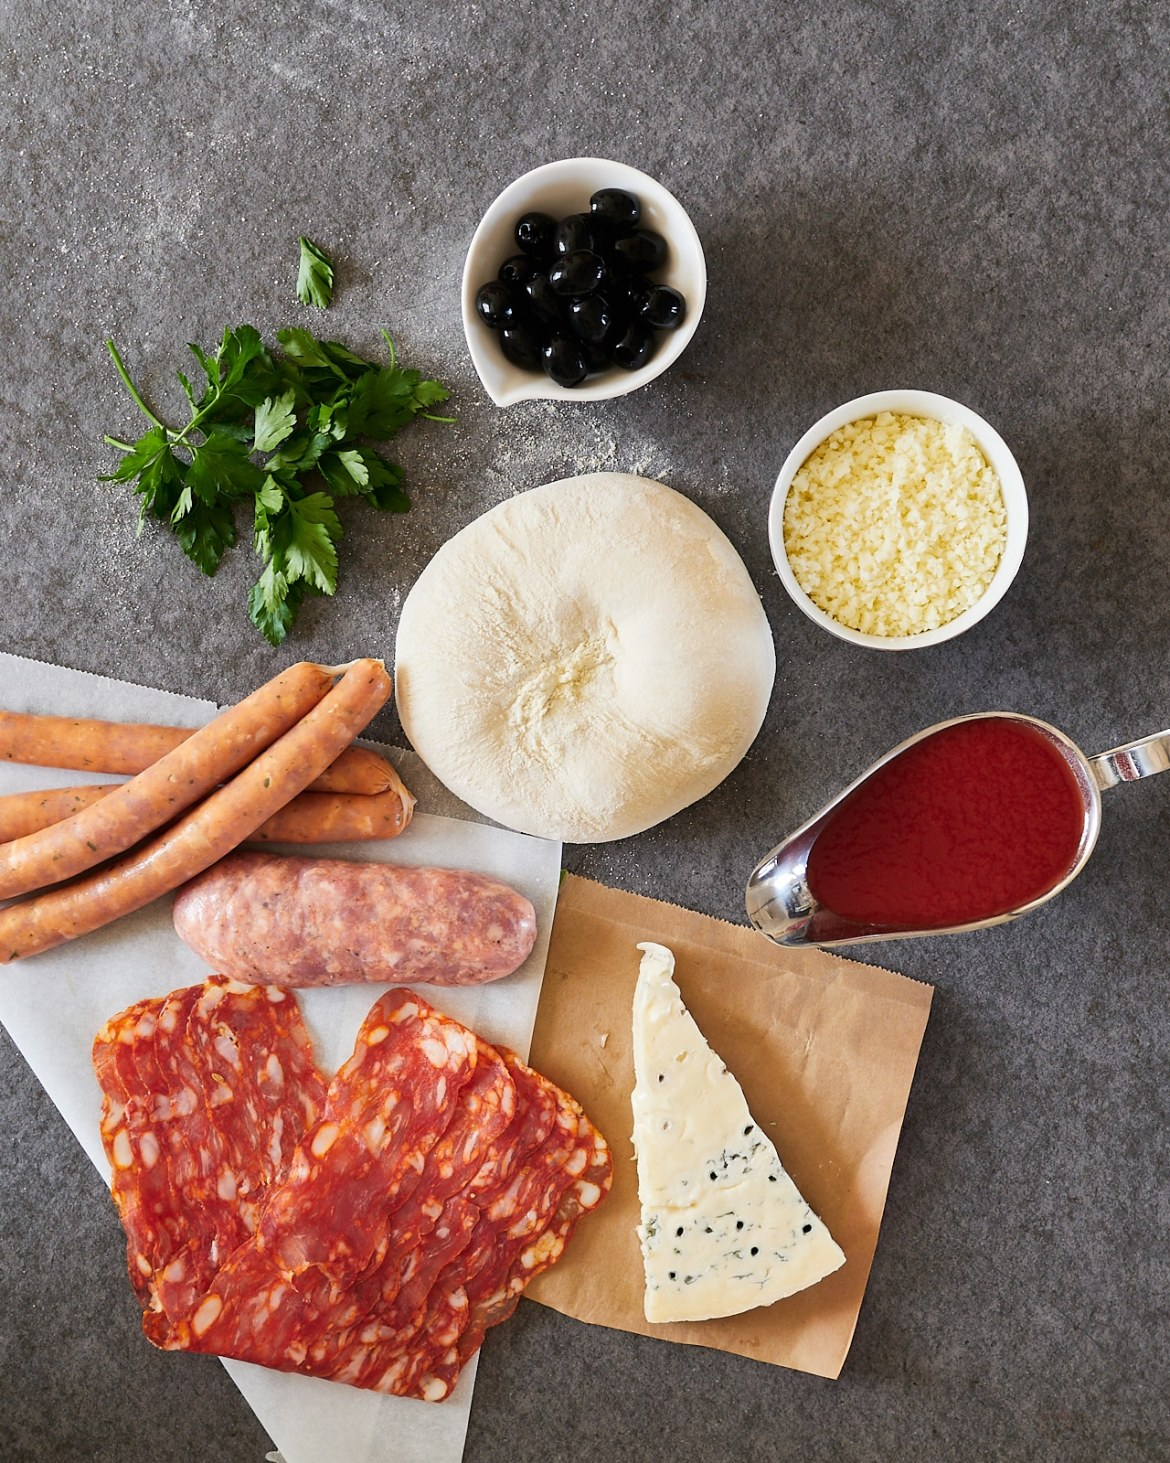 ingredients for sausage pizza